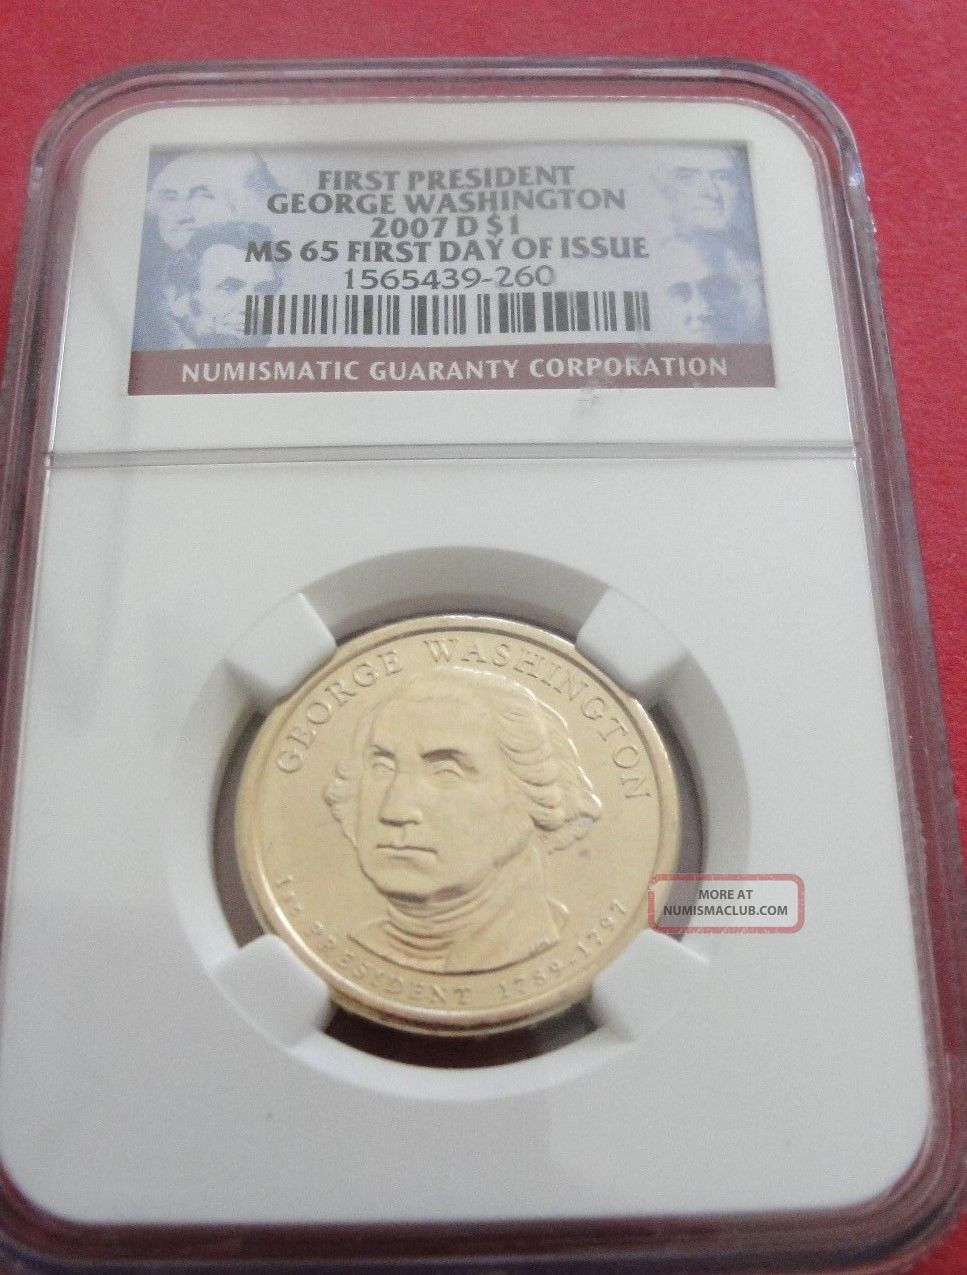 First President George Washington 2007 - D $1 Unc.  First Day Of Issue Ngc Dollars photo